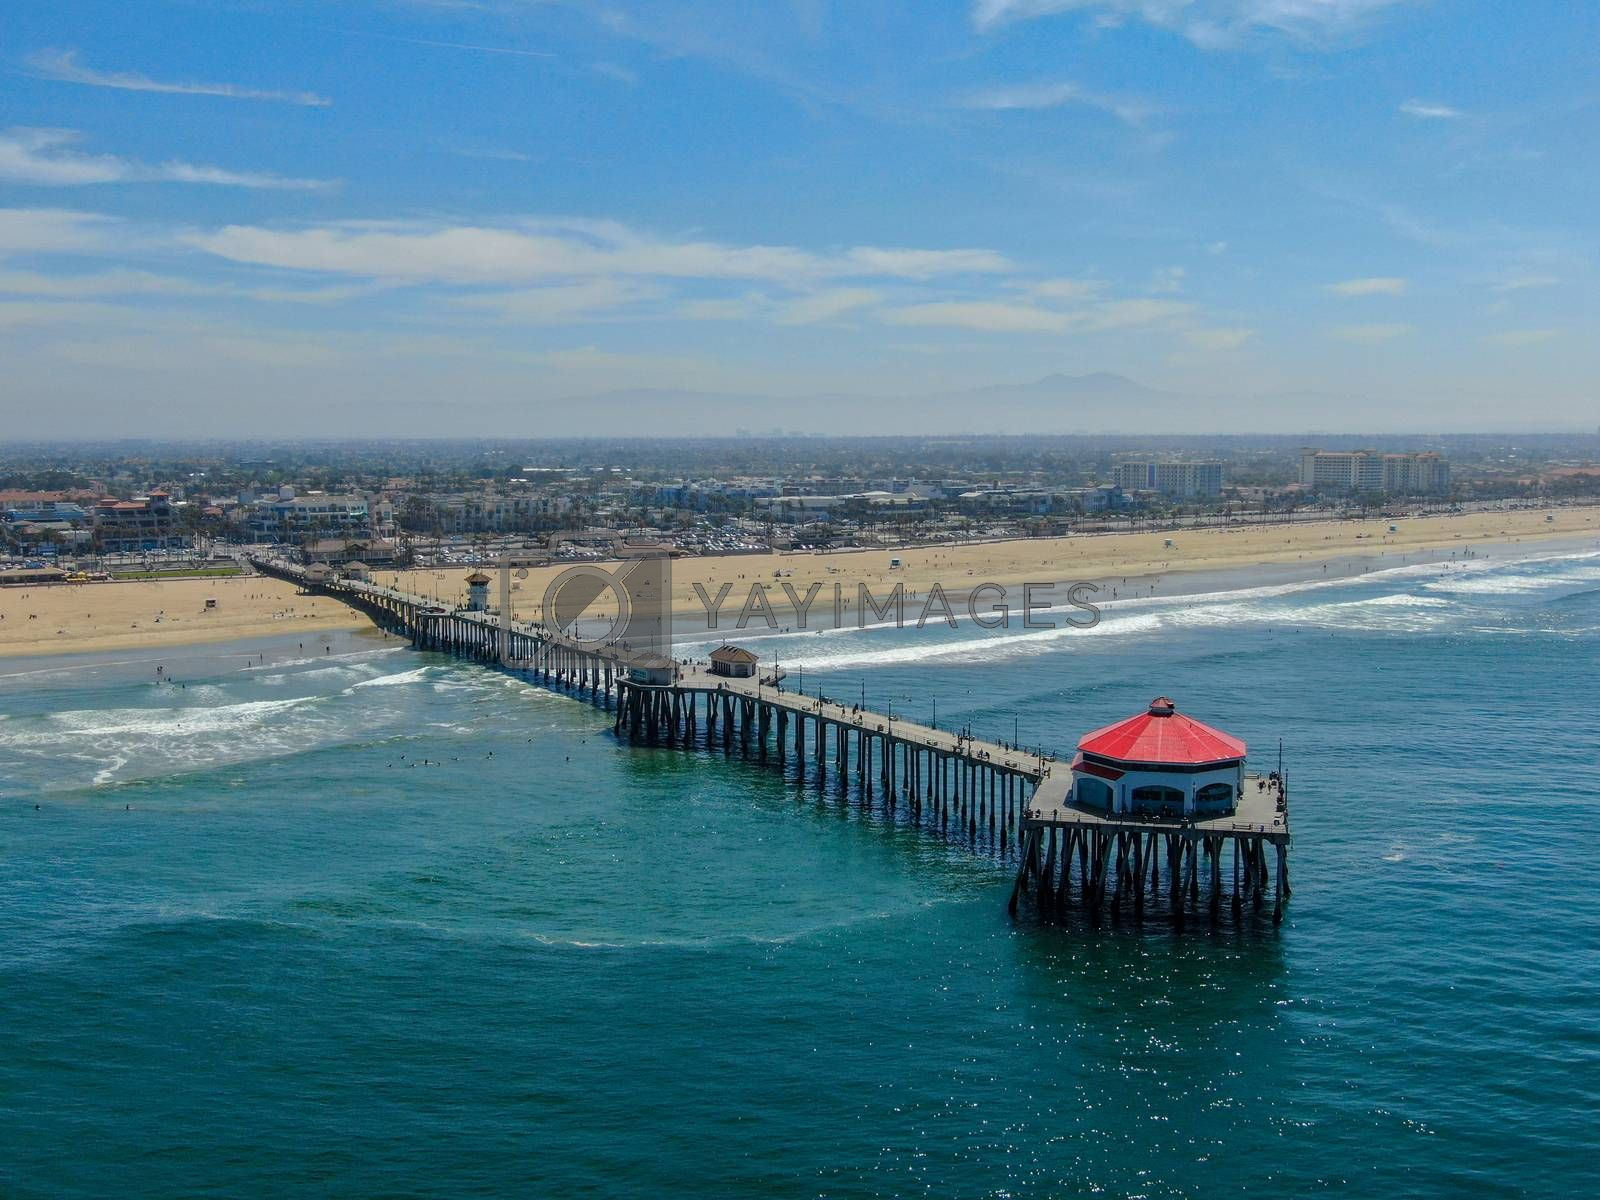 Royalty free image of Aerial view of Huntington Pier, beach and coastline during sunny summer day by Bonandbon